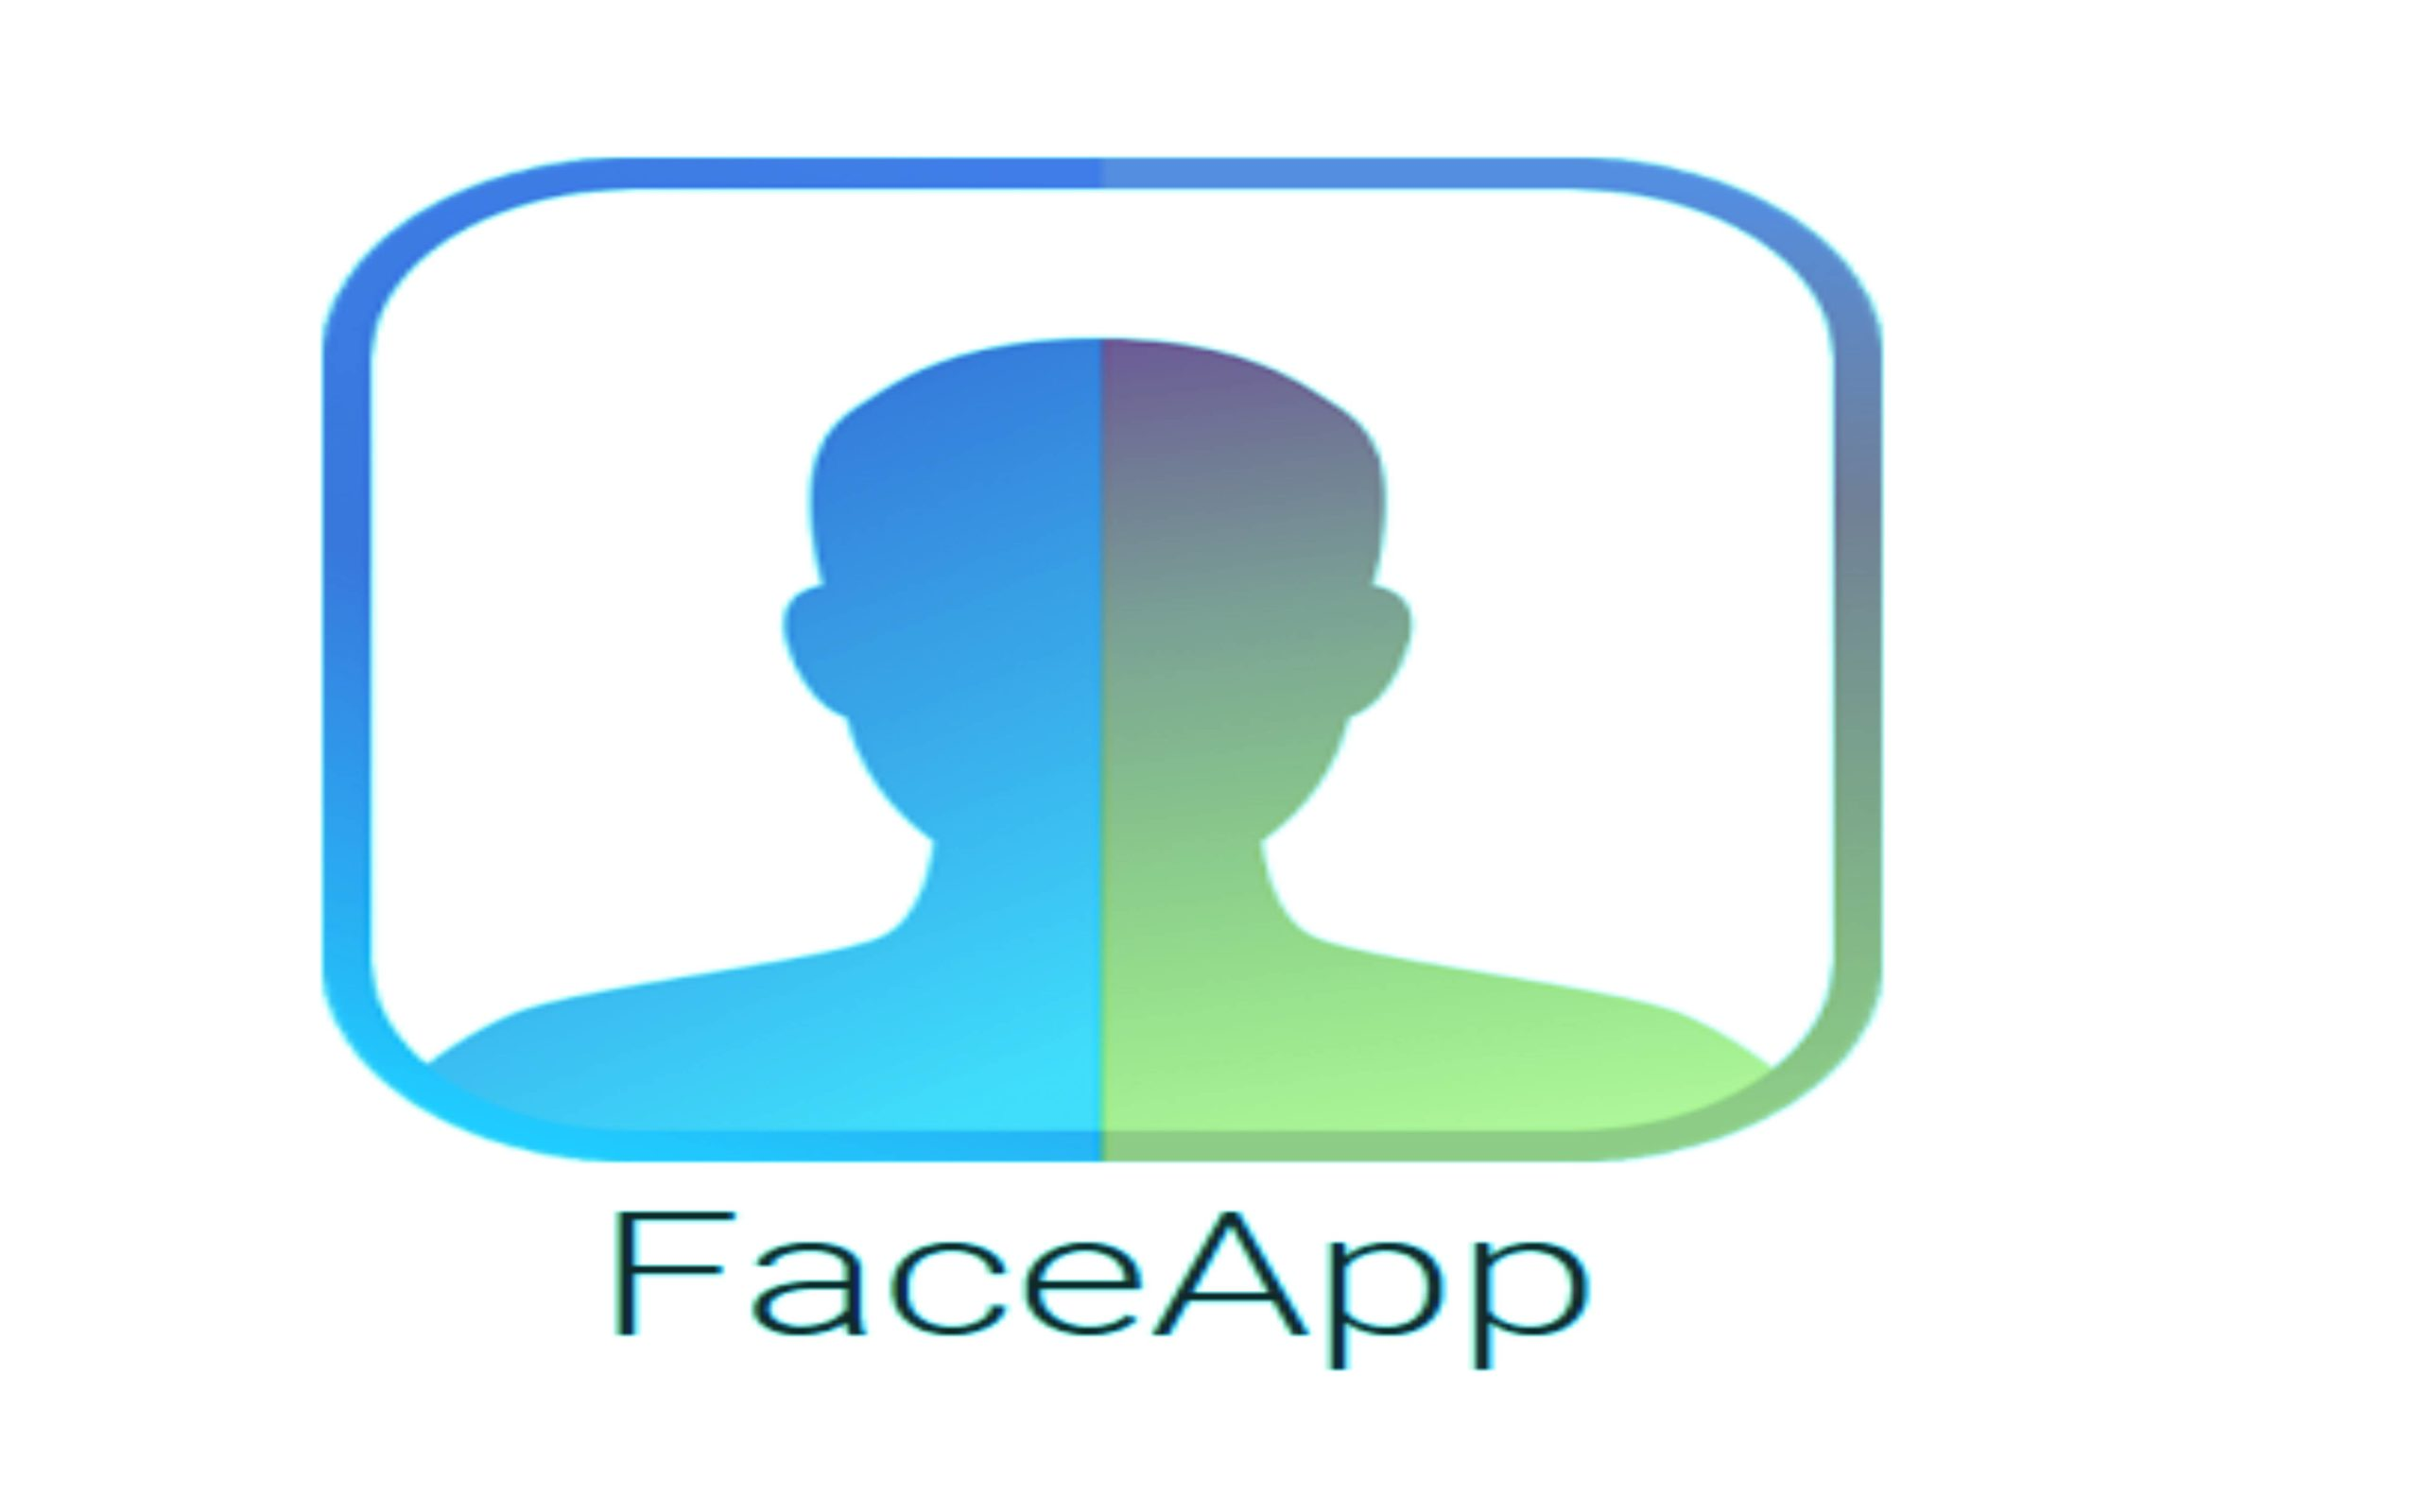 FaceApp Is Fashionable, But What Risks Does It Contain?